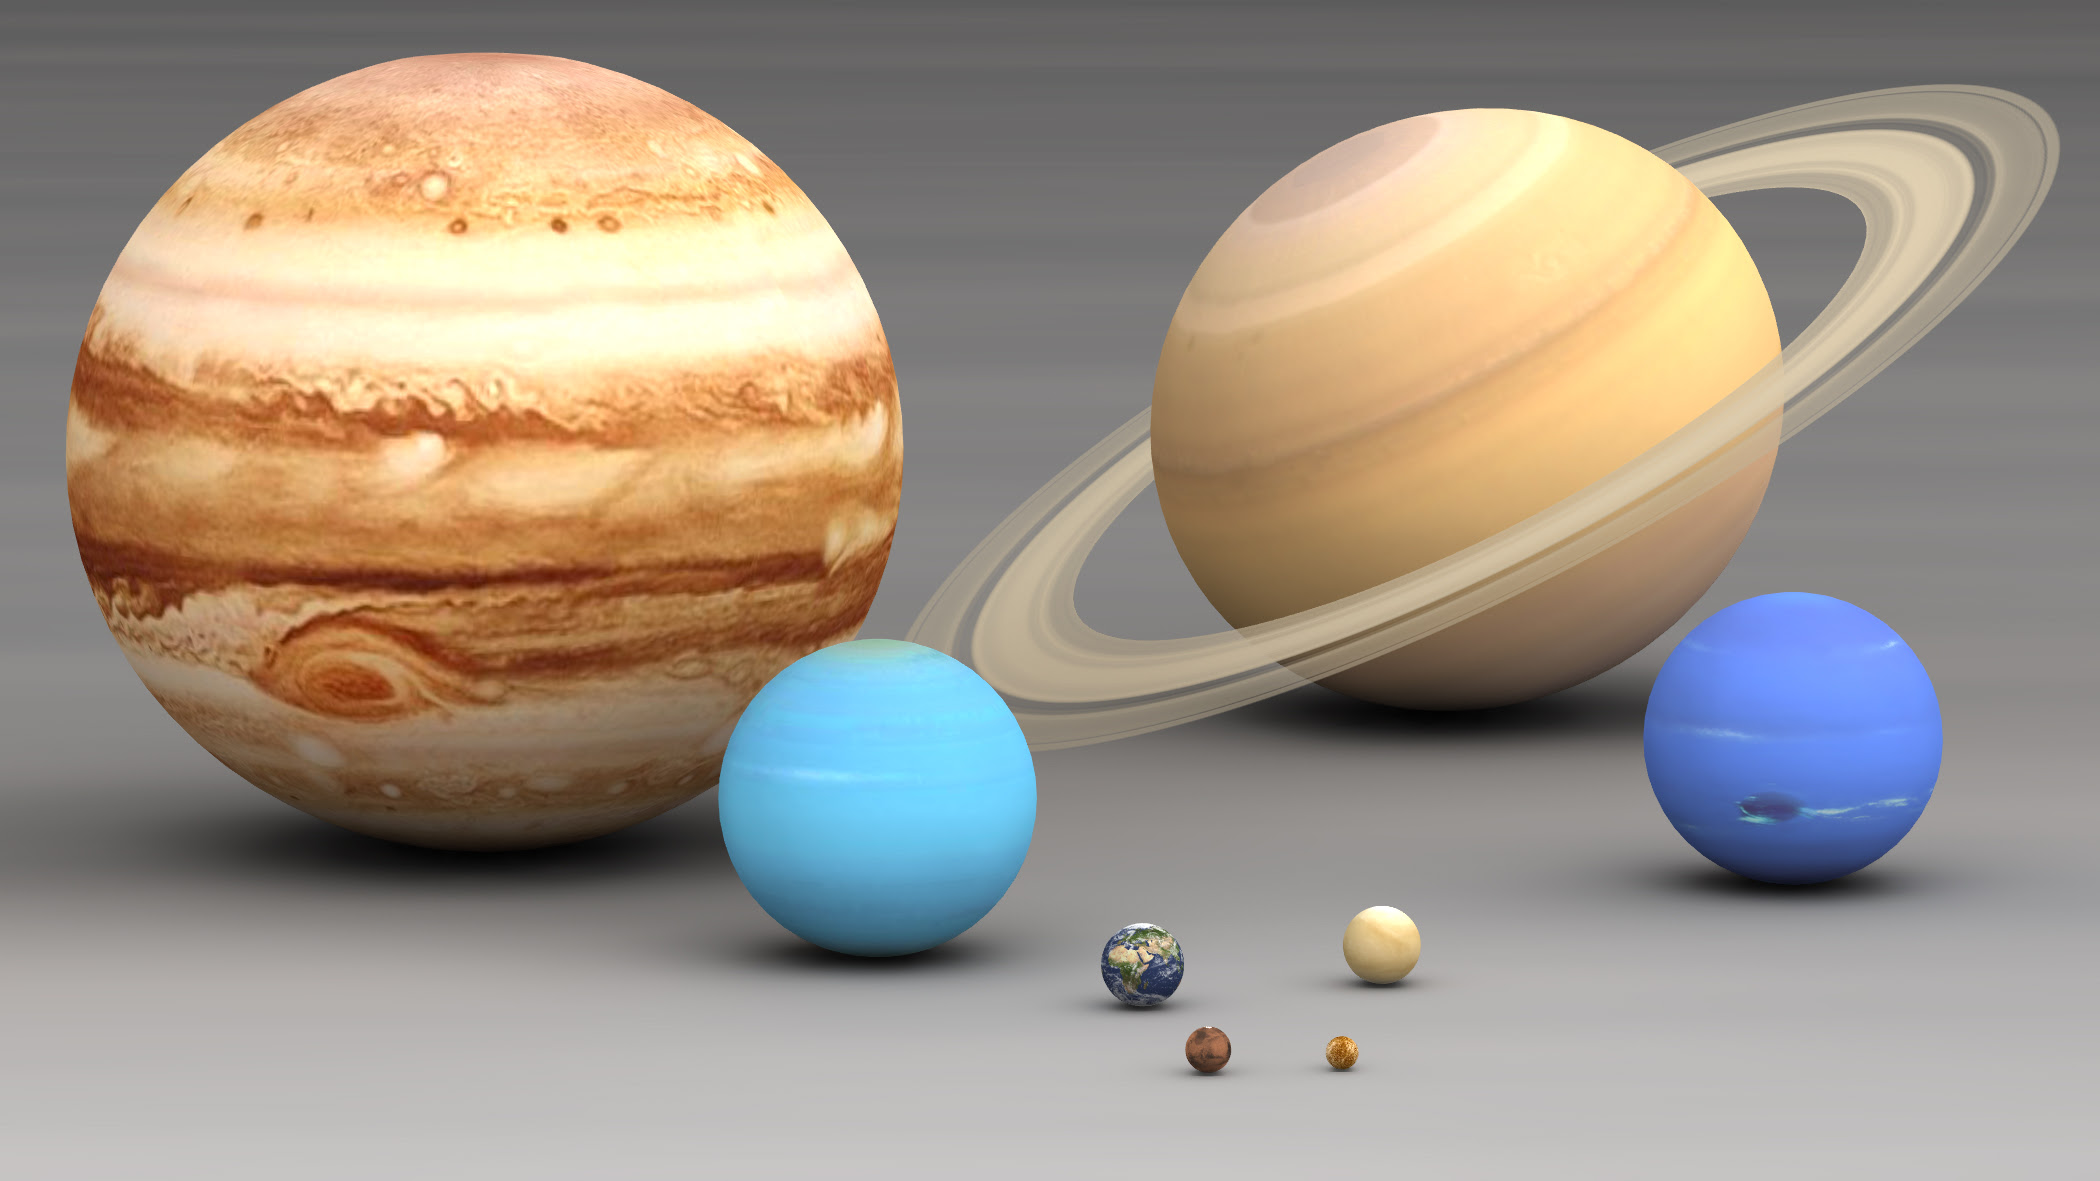 http://upload.wikimedia.org/wikipedia/commons/3/3c/Size_planets_comparison.jpg